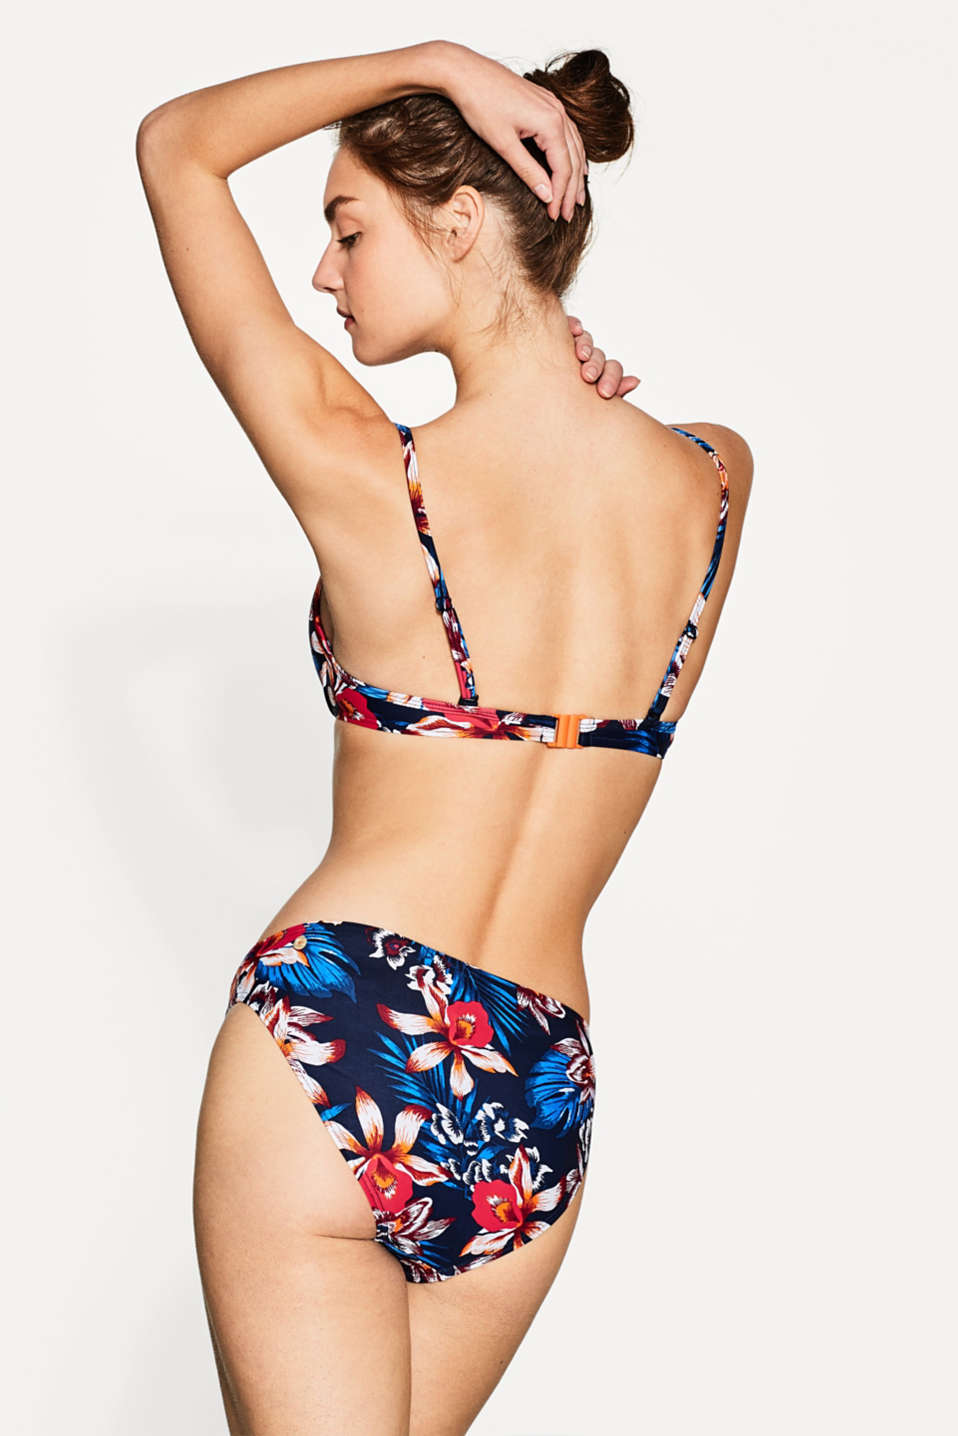 Push-up bikini top with a bright floral print